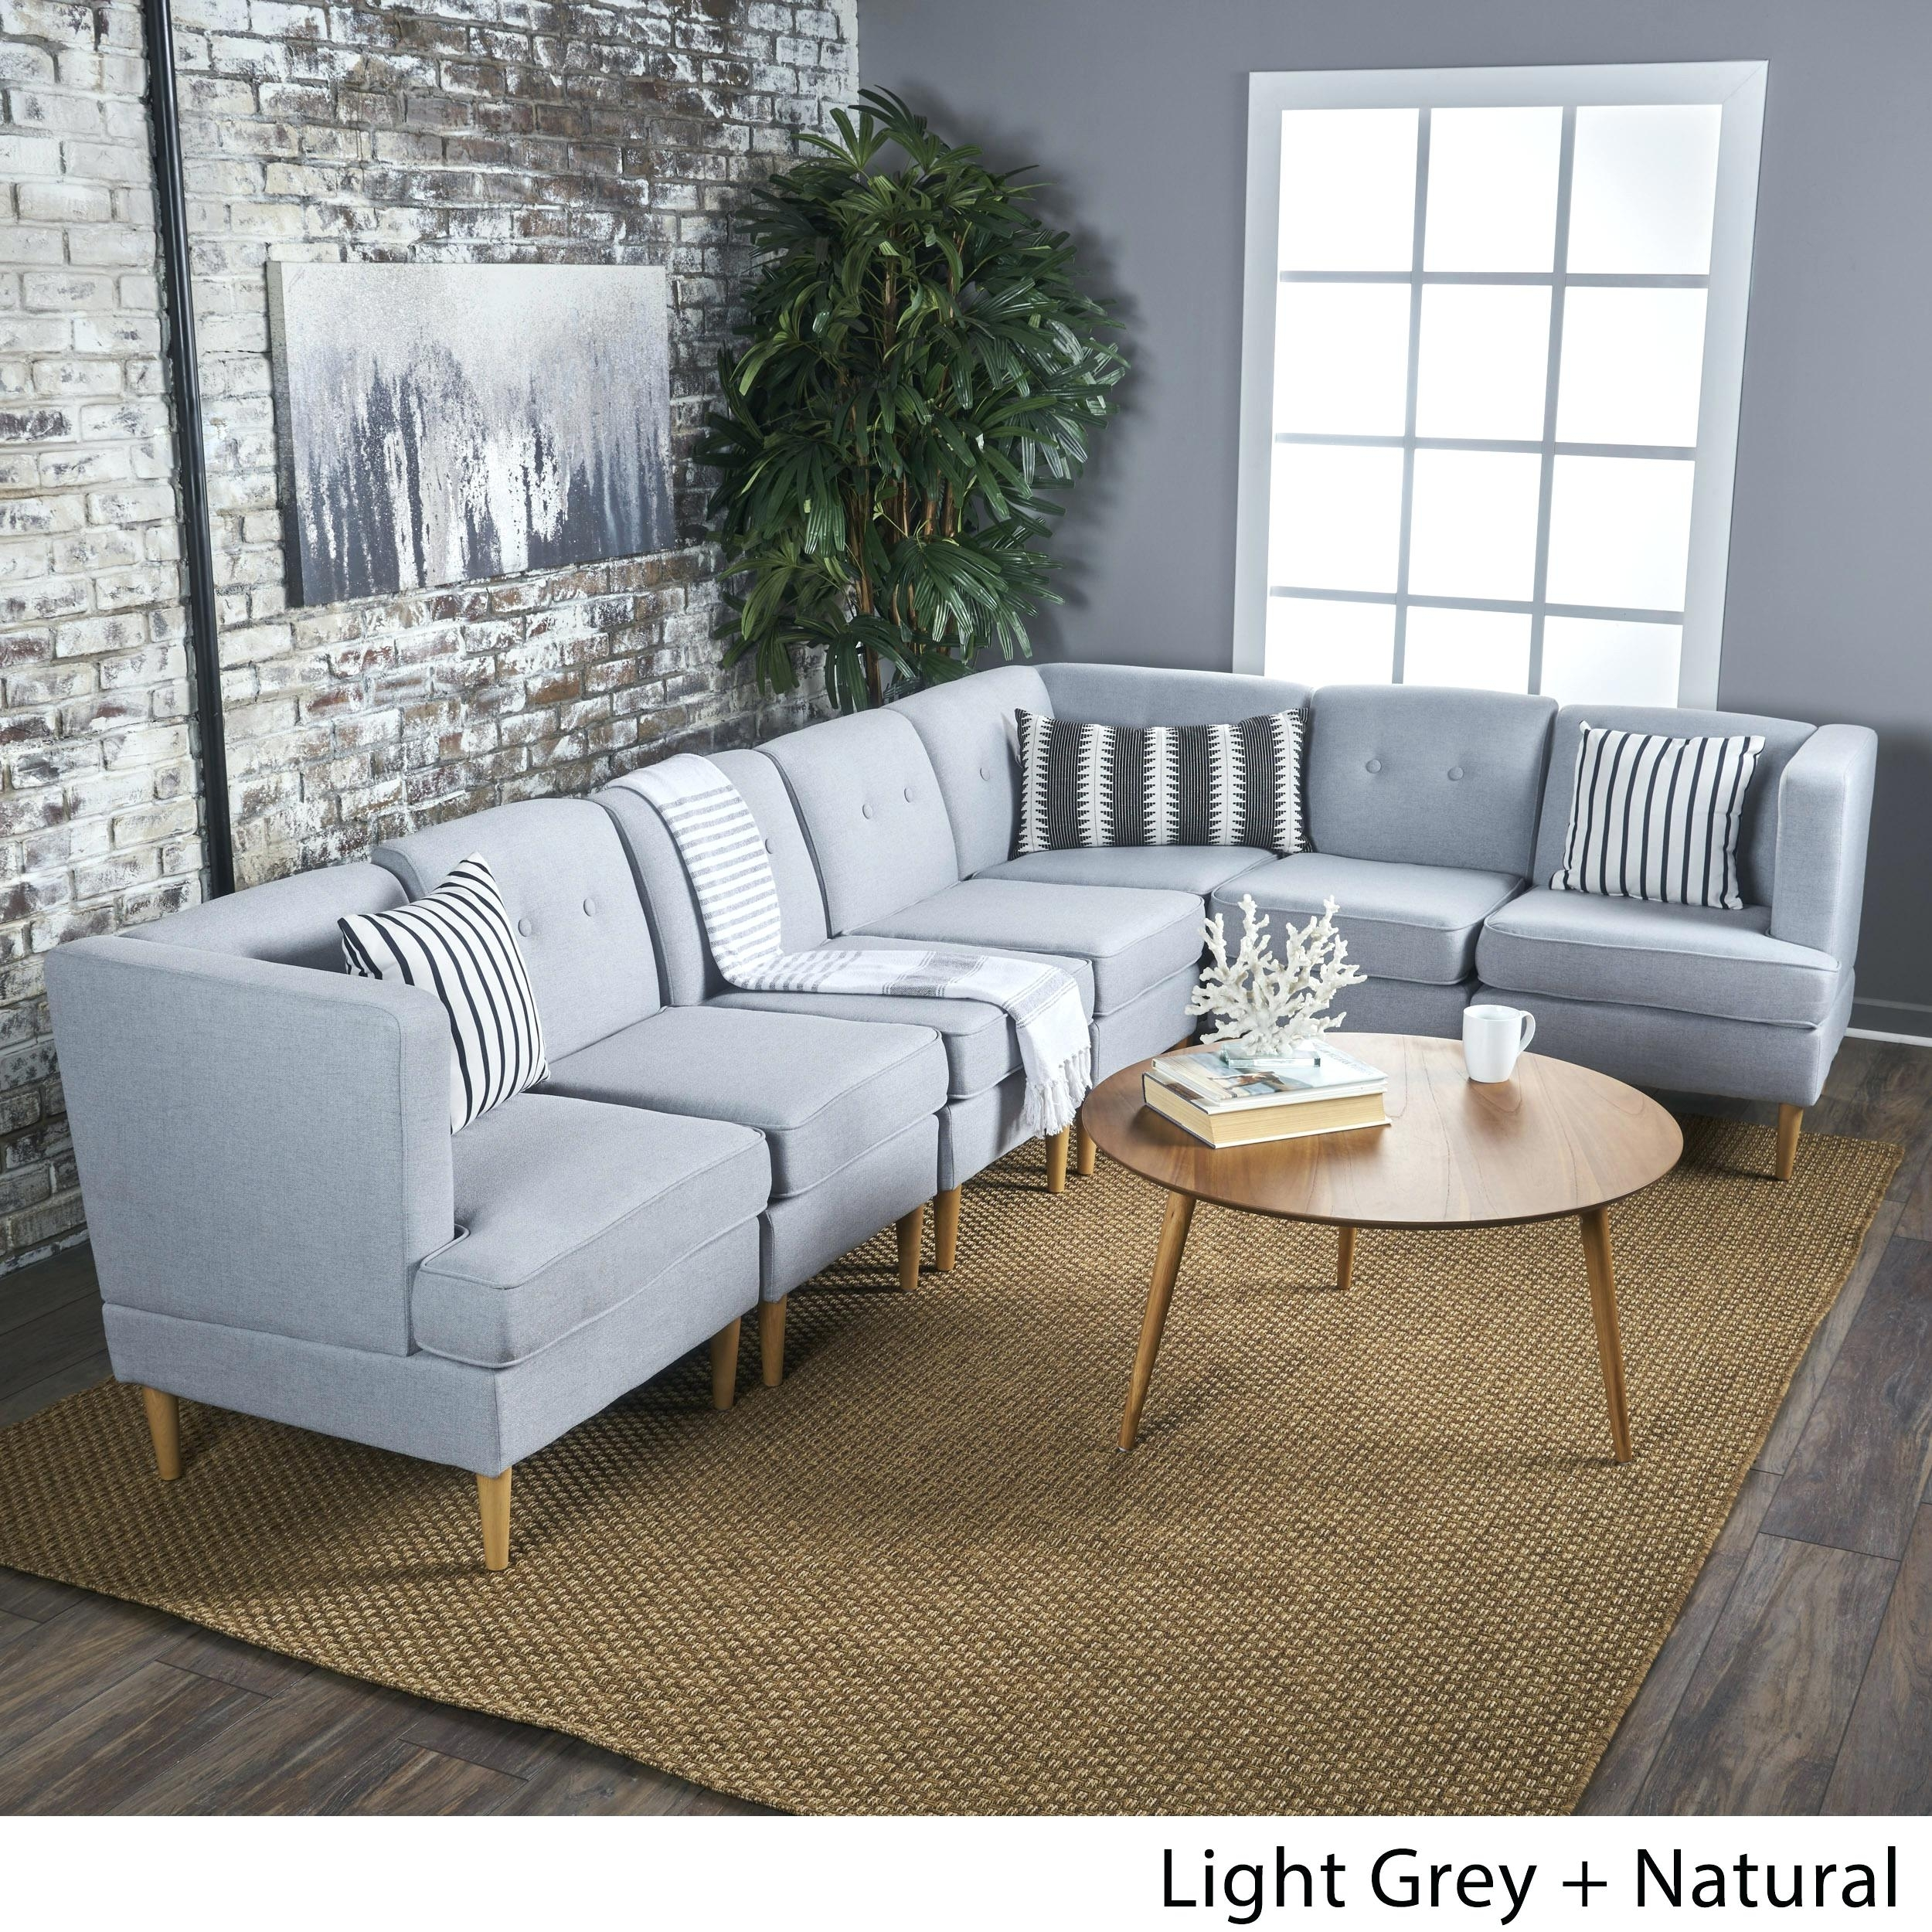 Sams Club Living Room Furniture Kitchen Ideas Online Cheap Inspiring Pertaining To Sams Club Sectional Sofas (View 8 of 10)